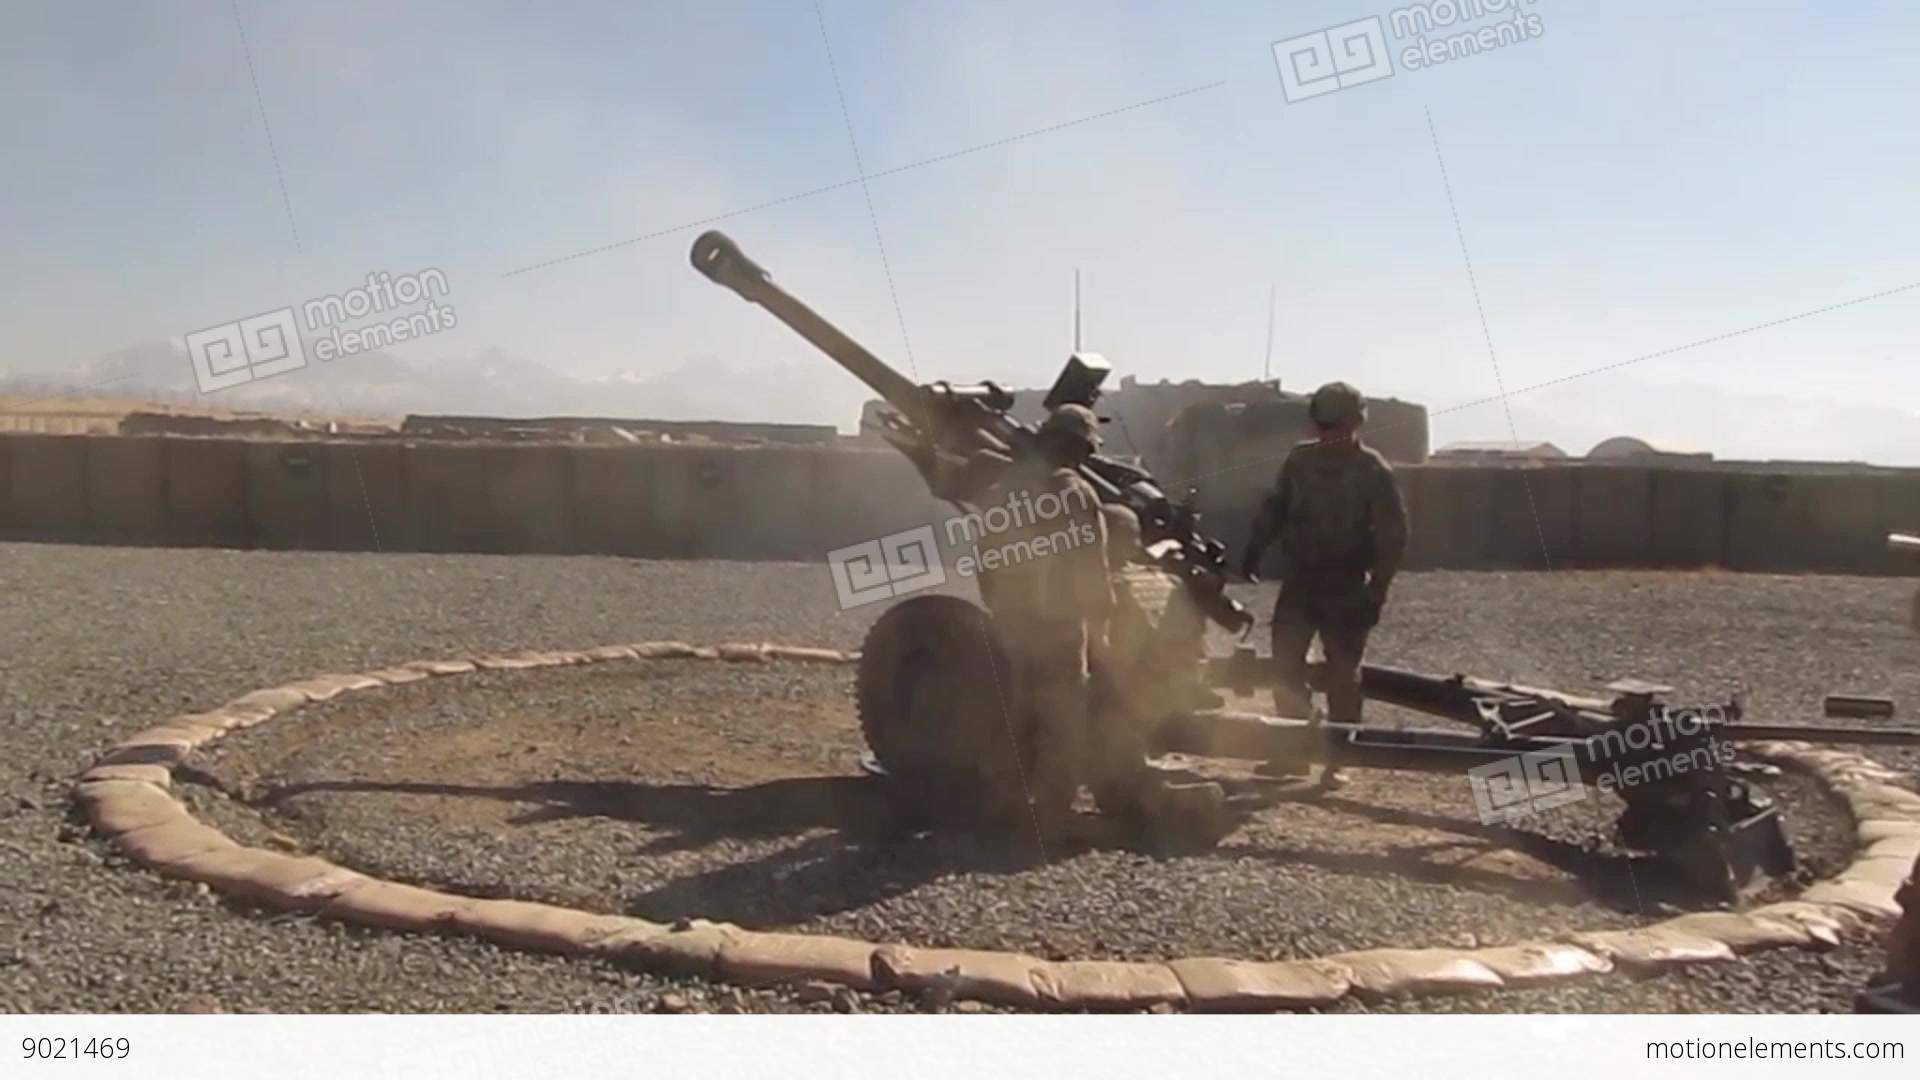 List of Synonyms and Antonyms of the Word: M119 Howitzer